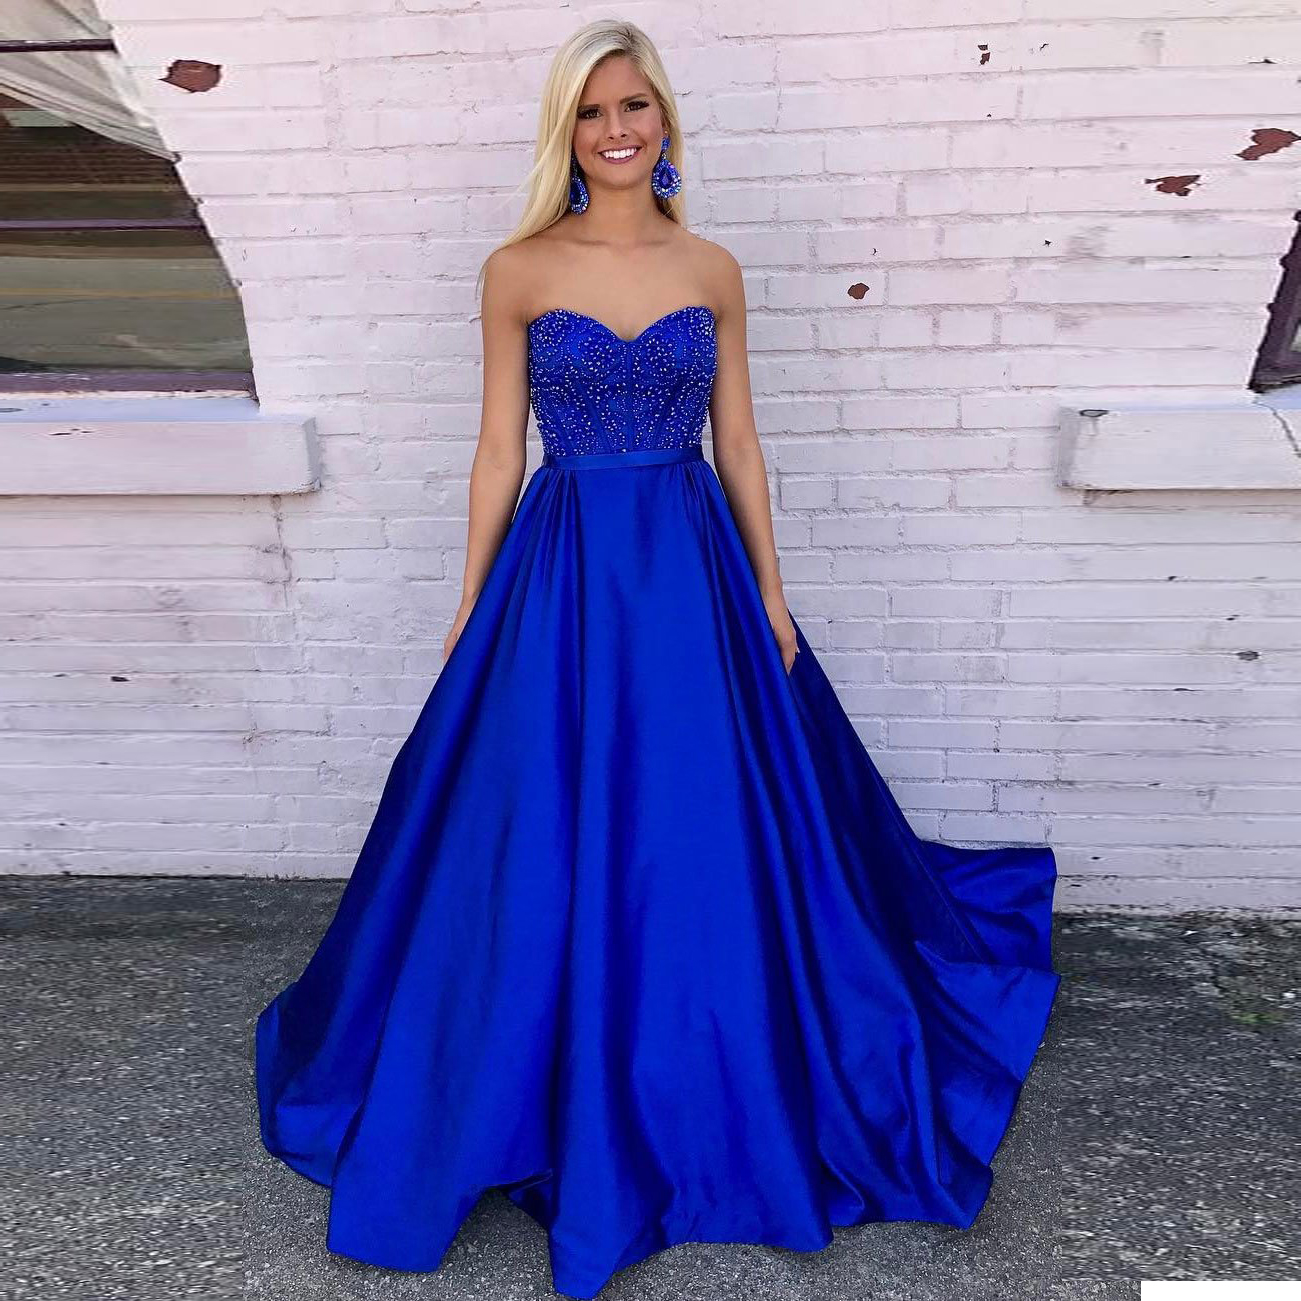 Elegant Sweetheart Royal Blue Prom Dress,A Line Formal Gown With ...